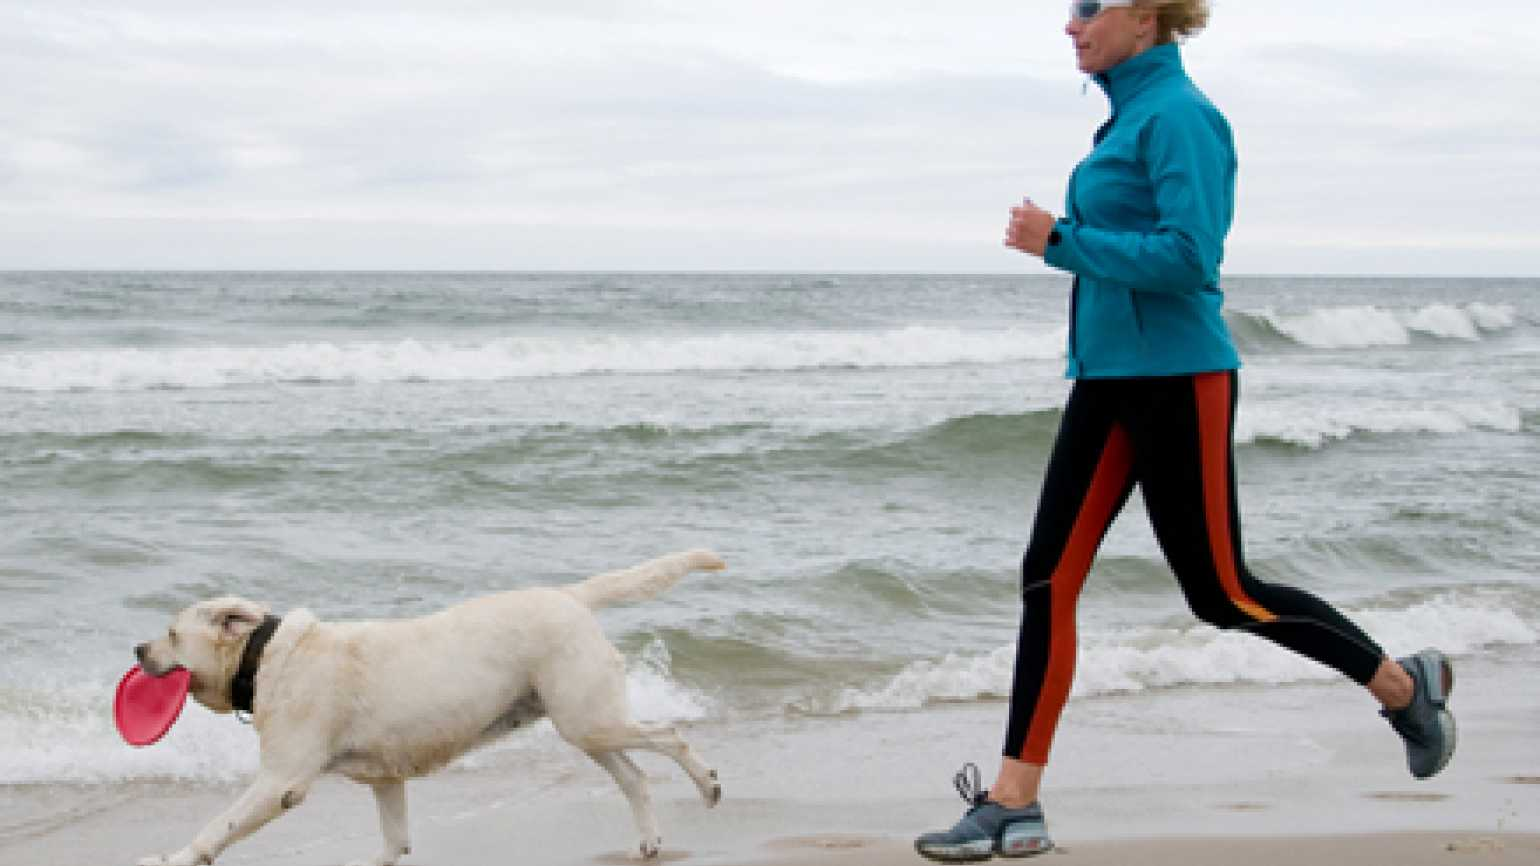 A dog and its human companion go running on the beach